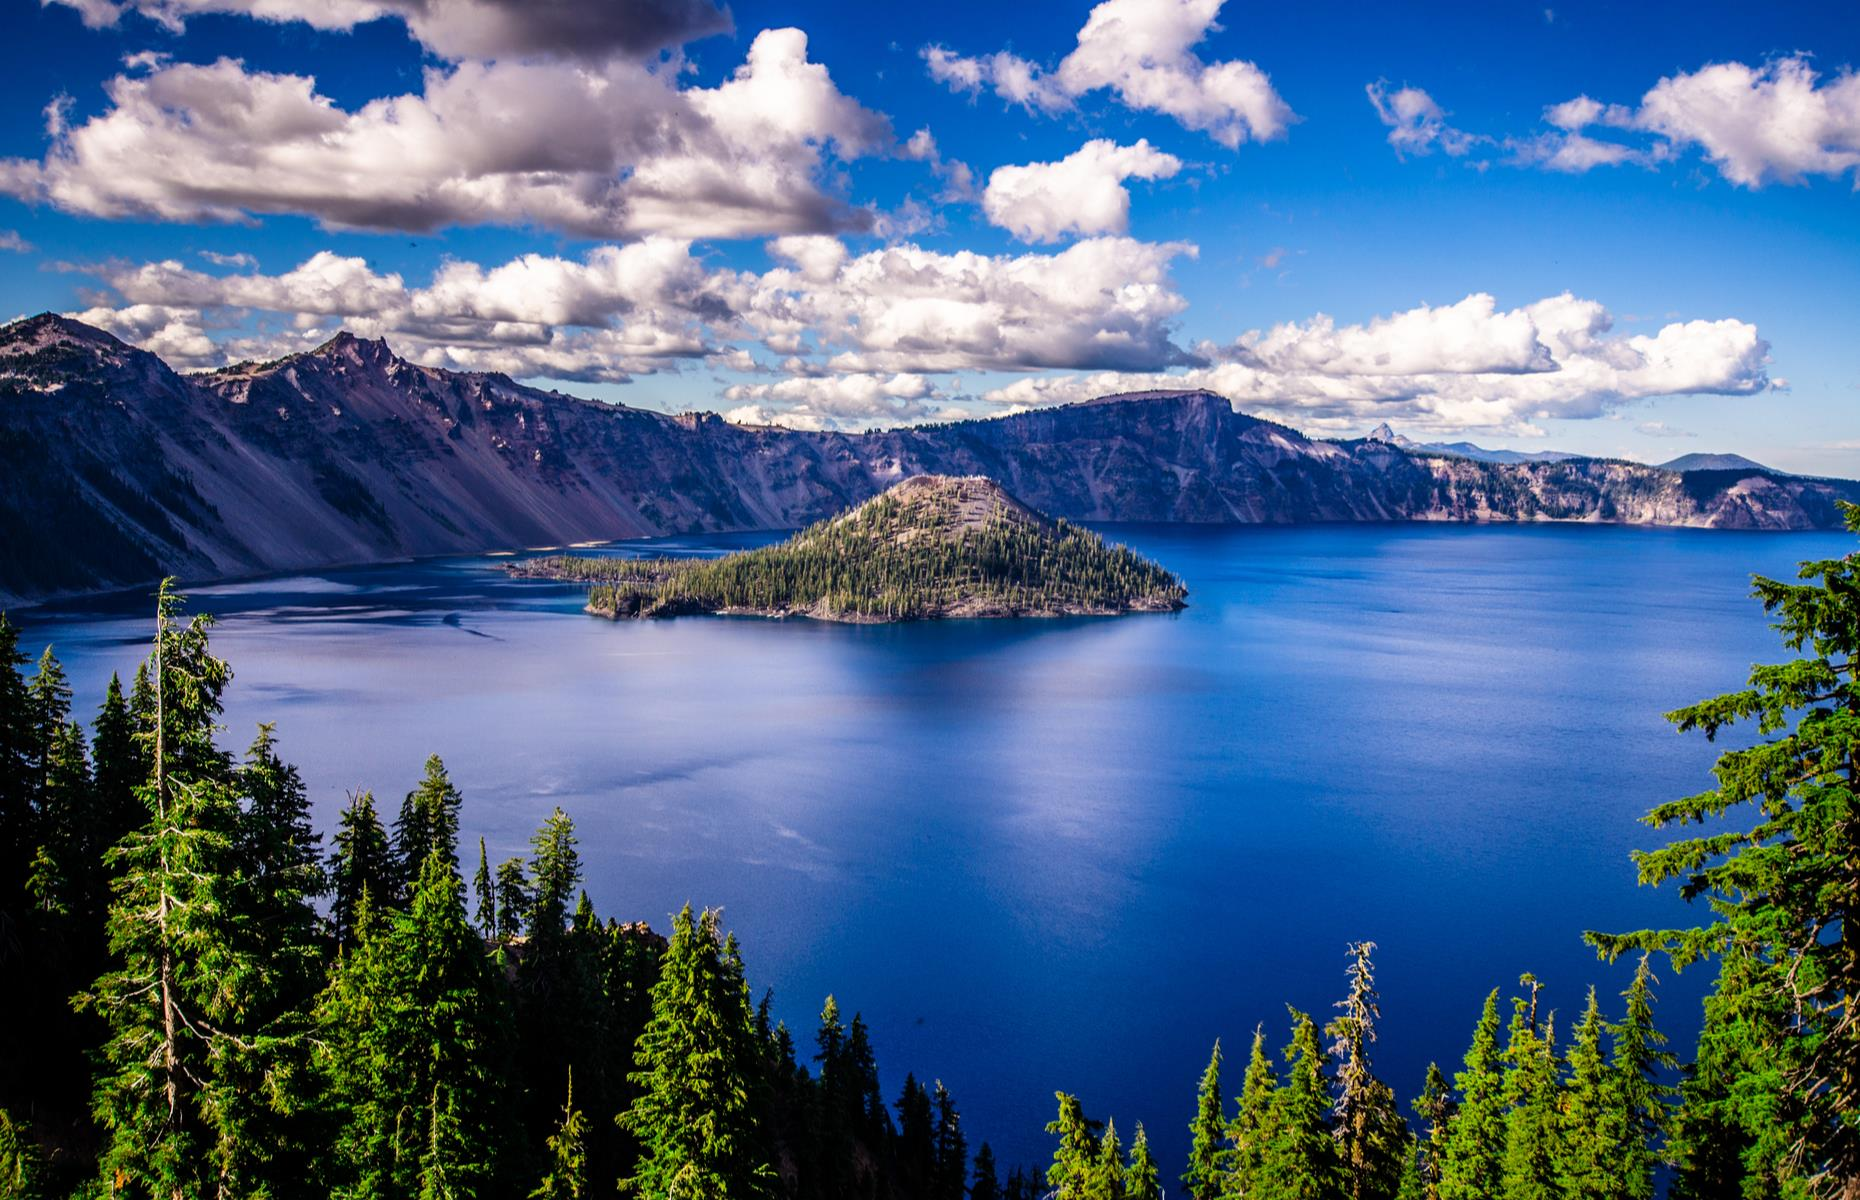 Slide 88 of 100: One of the deepest lakes in the world – and the very deepest in the United States – Oregon's Crater lake was formed some 7,700 years ago, when a volcanic peak collapsed, leaving behind a vast caldera. It plunges to a depth of 1,943 feet (592m) and its vivid sapphire waters are ringed by mountains and old-growth forest.